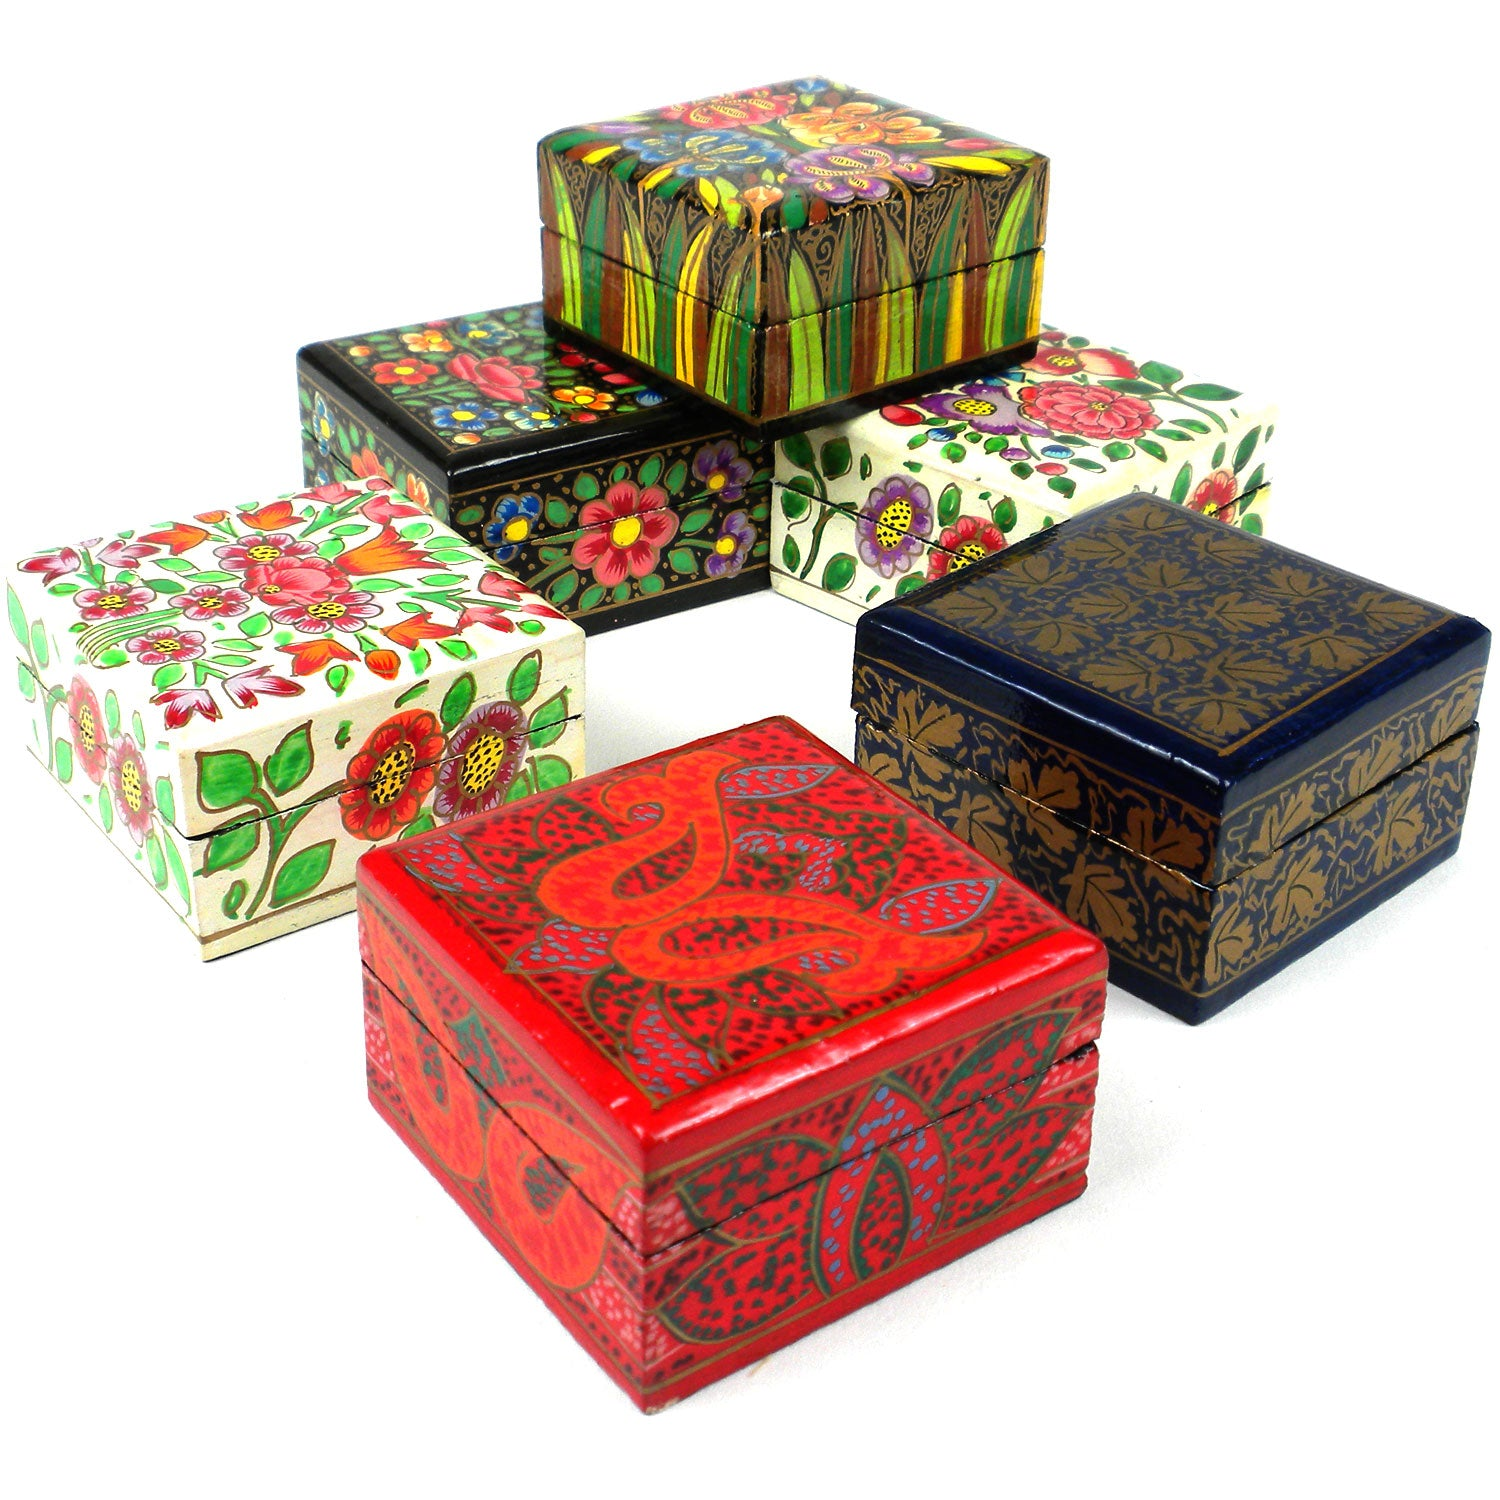 Six Wood Mini Square Hand-Painted Boxes